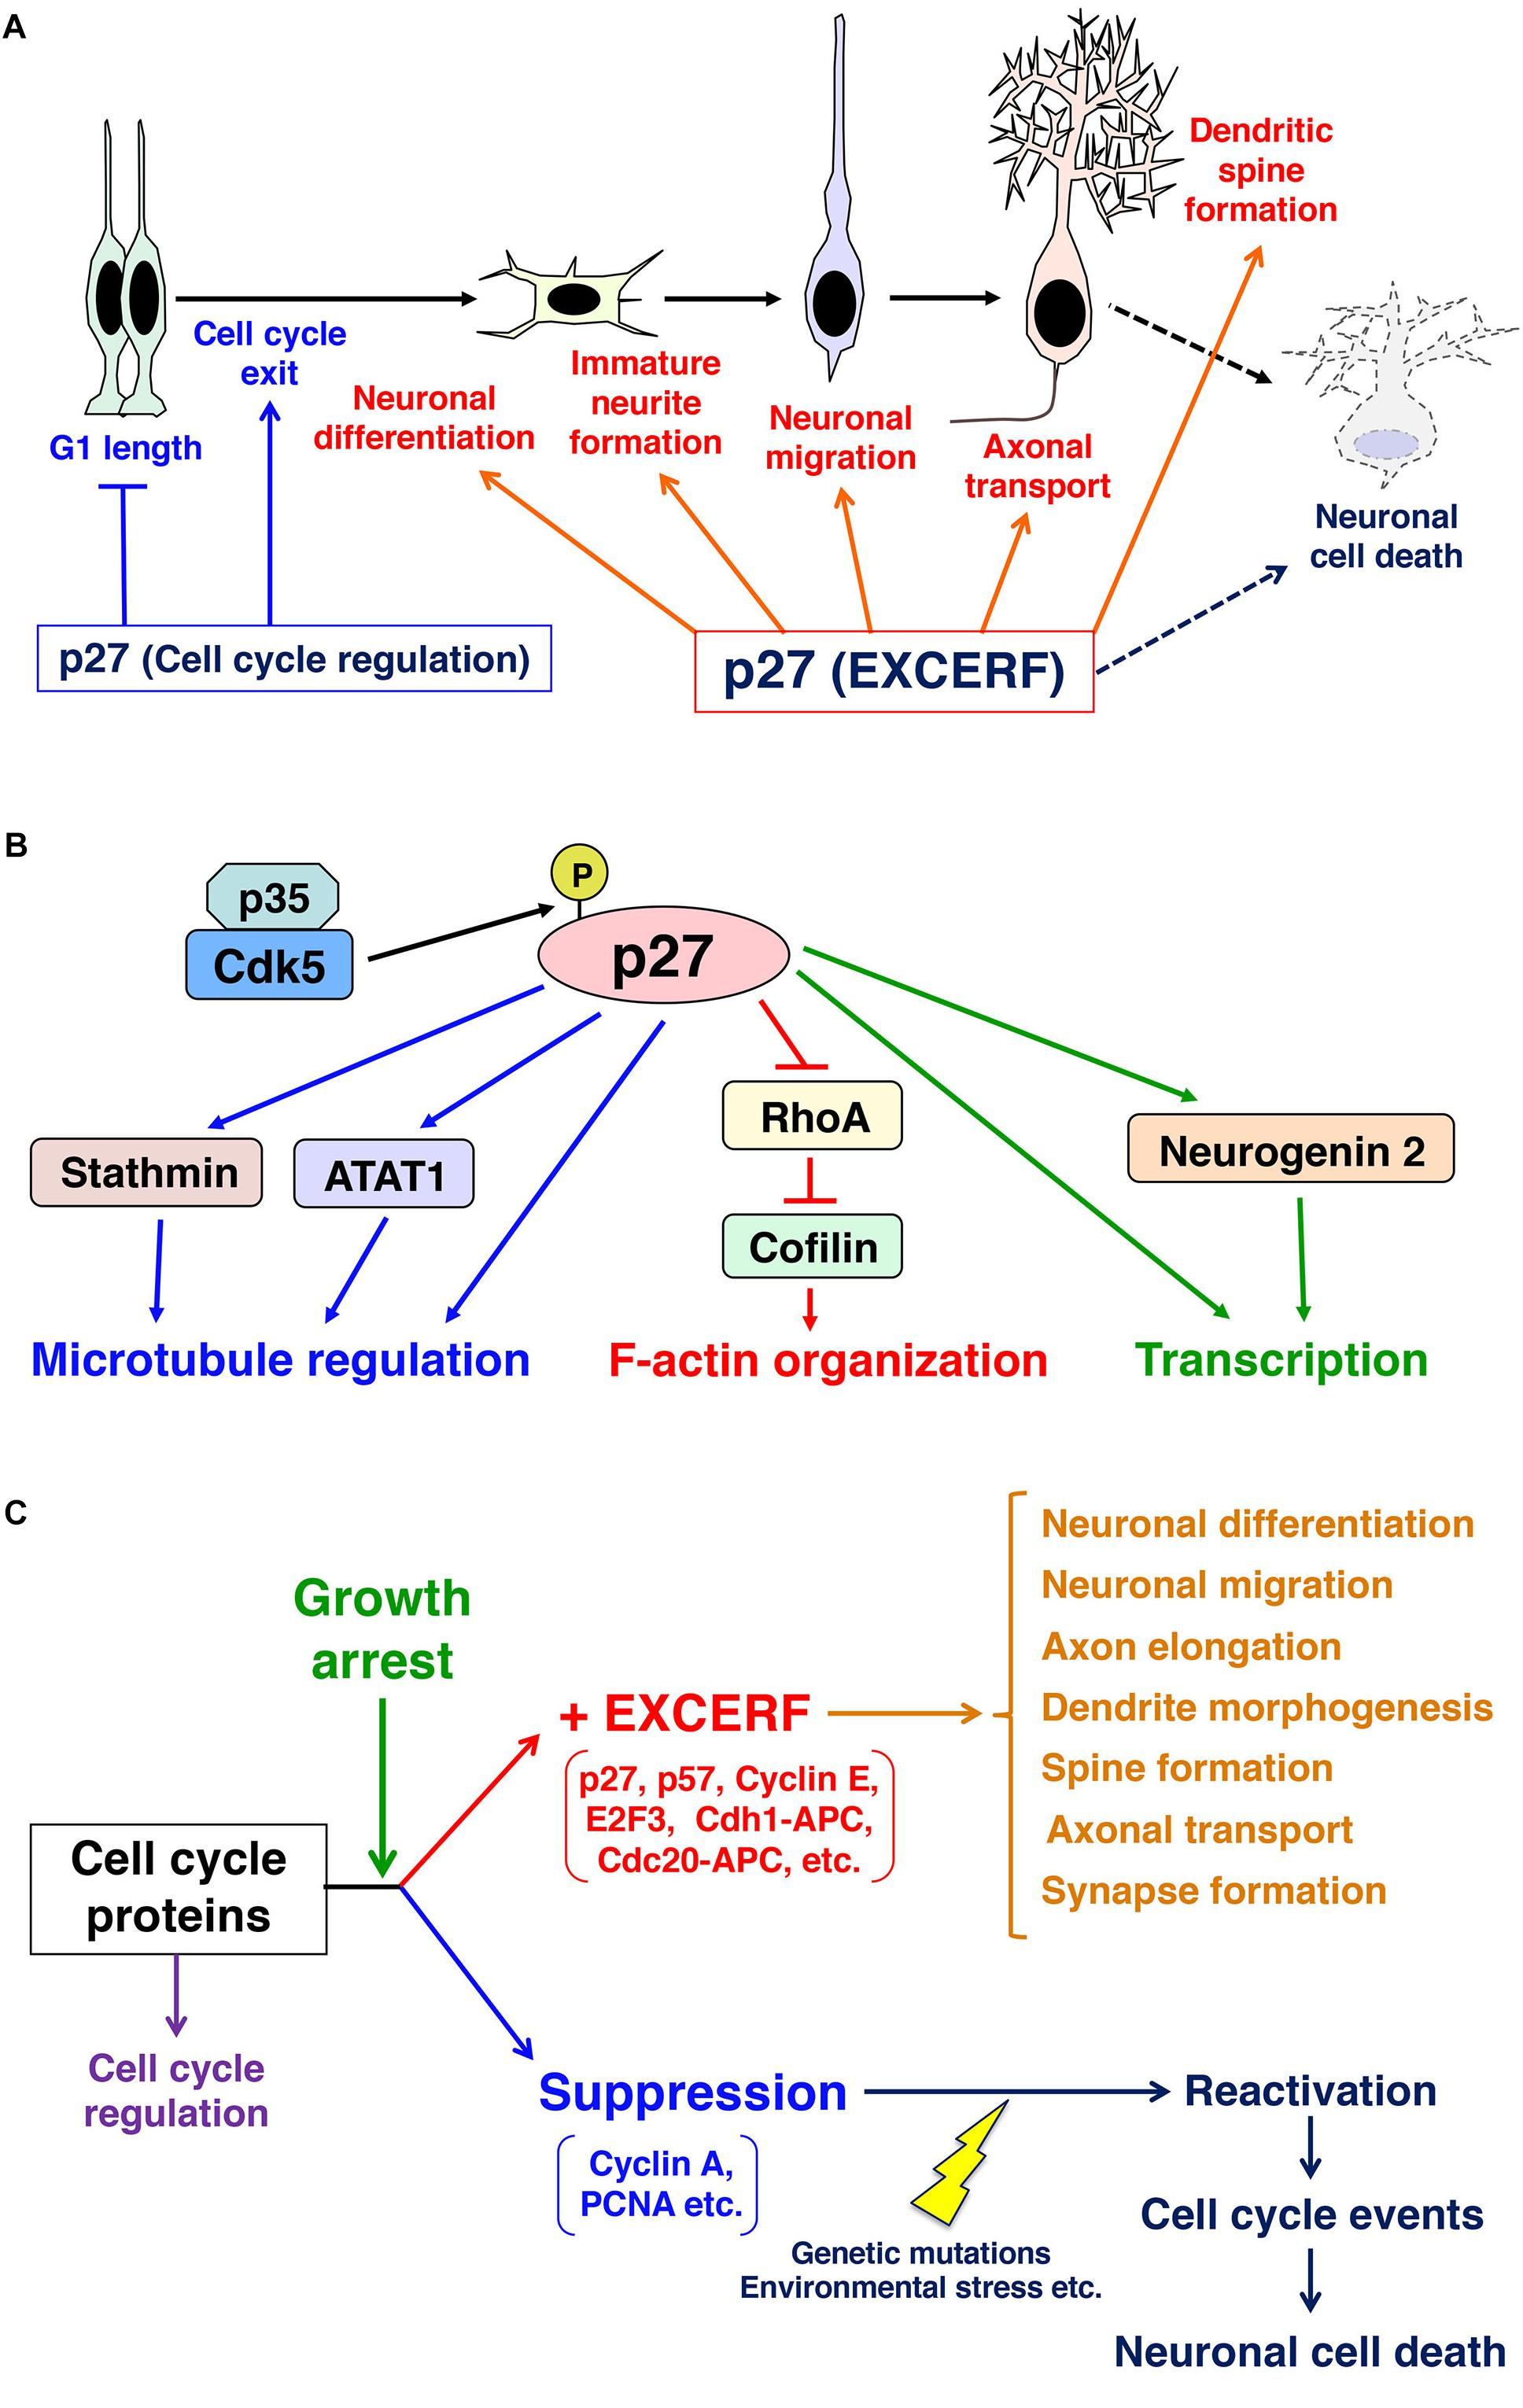 Frontiers | Growth Arrest Triggers Extra-Cell Cycle Regulatory ... on